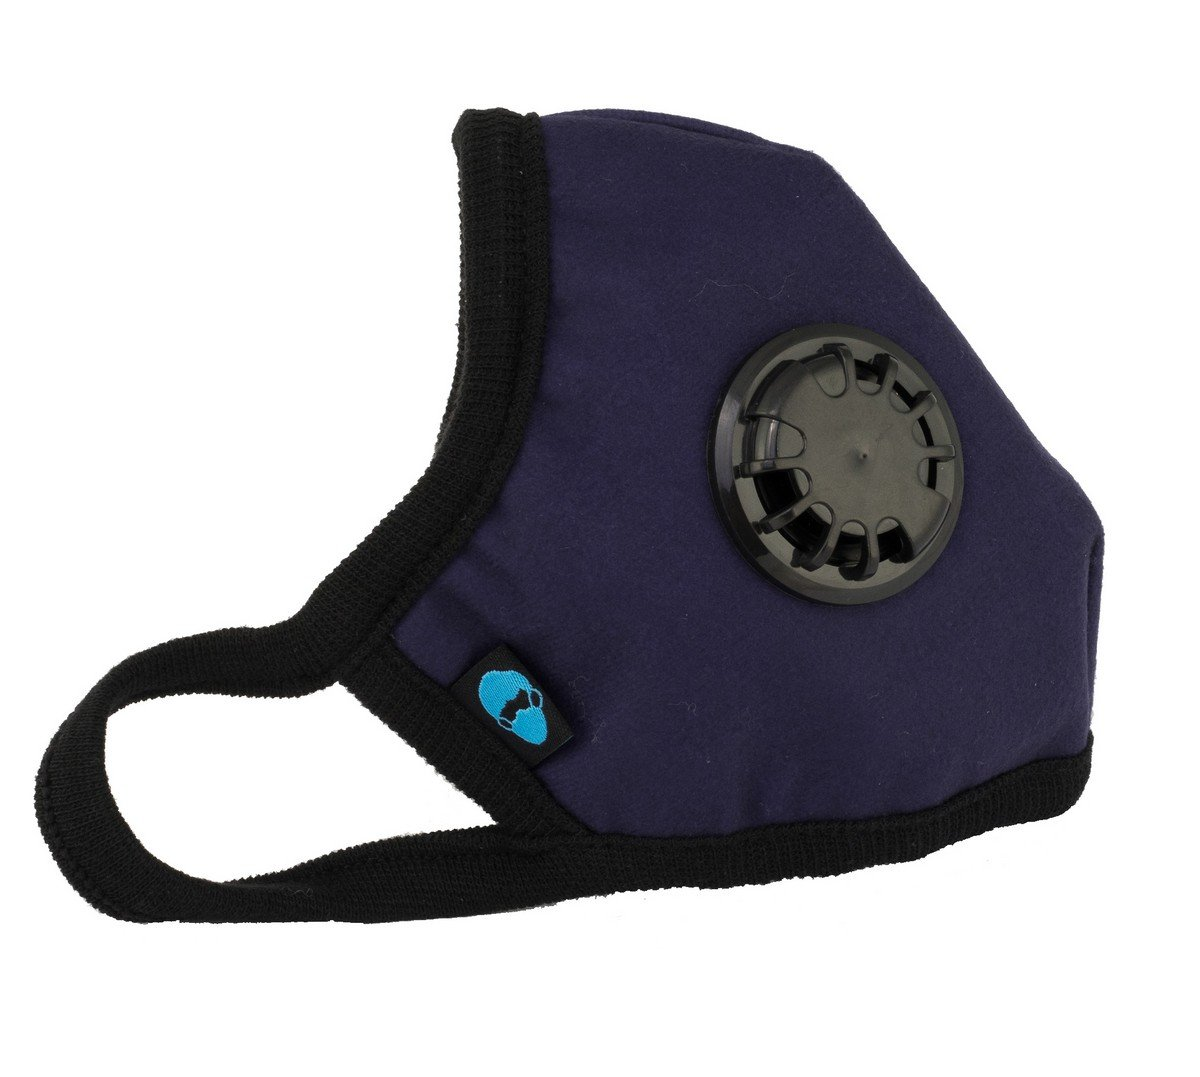 Air Co Viruses Mask Bacteria Respirator Anti Cycling Grade Dust Pollution N99 Cambridge Washable Military Allergies